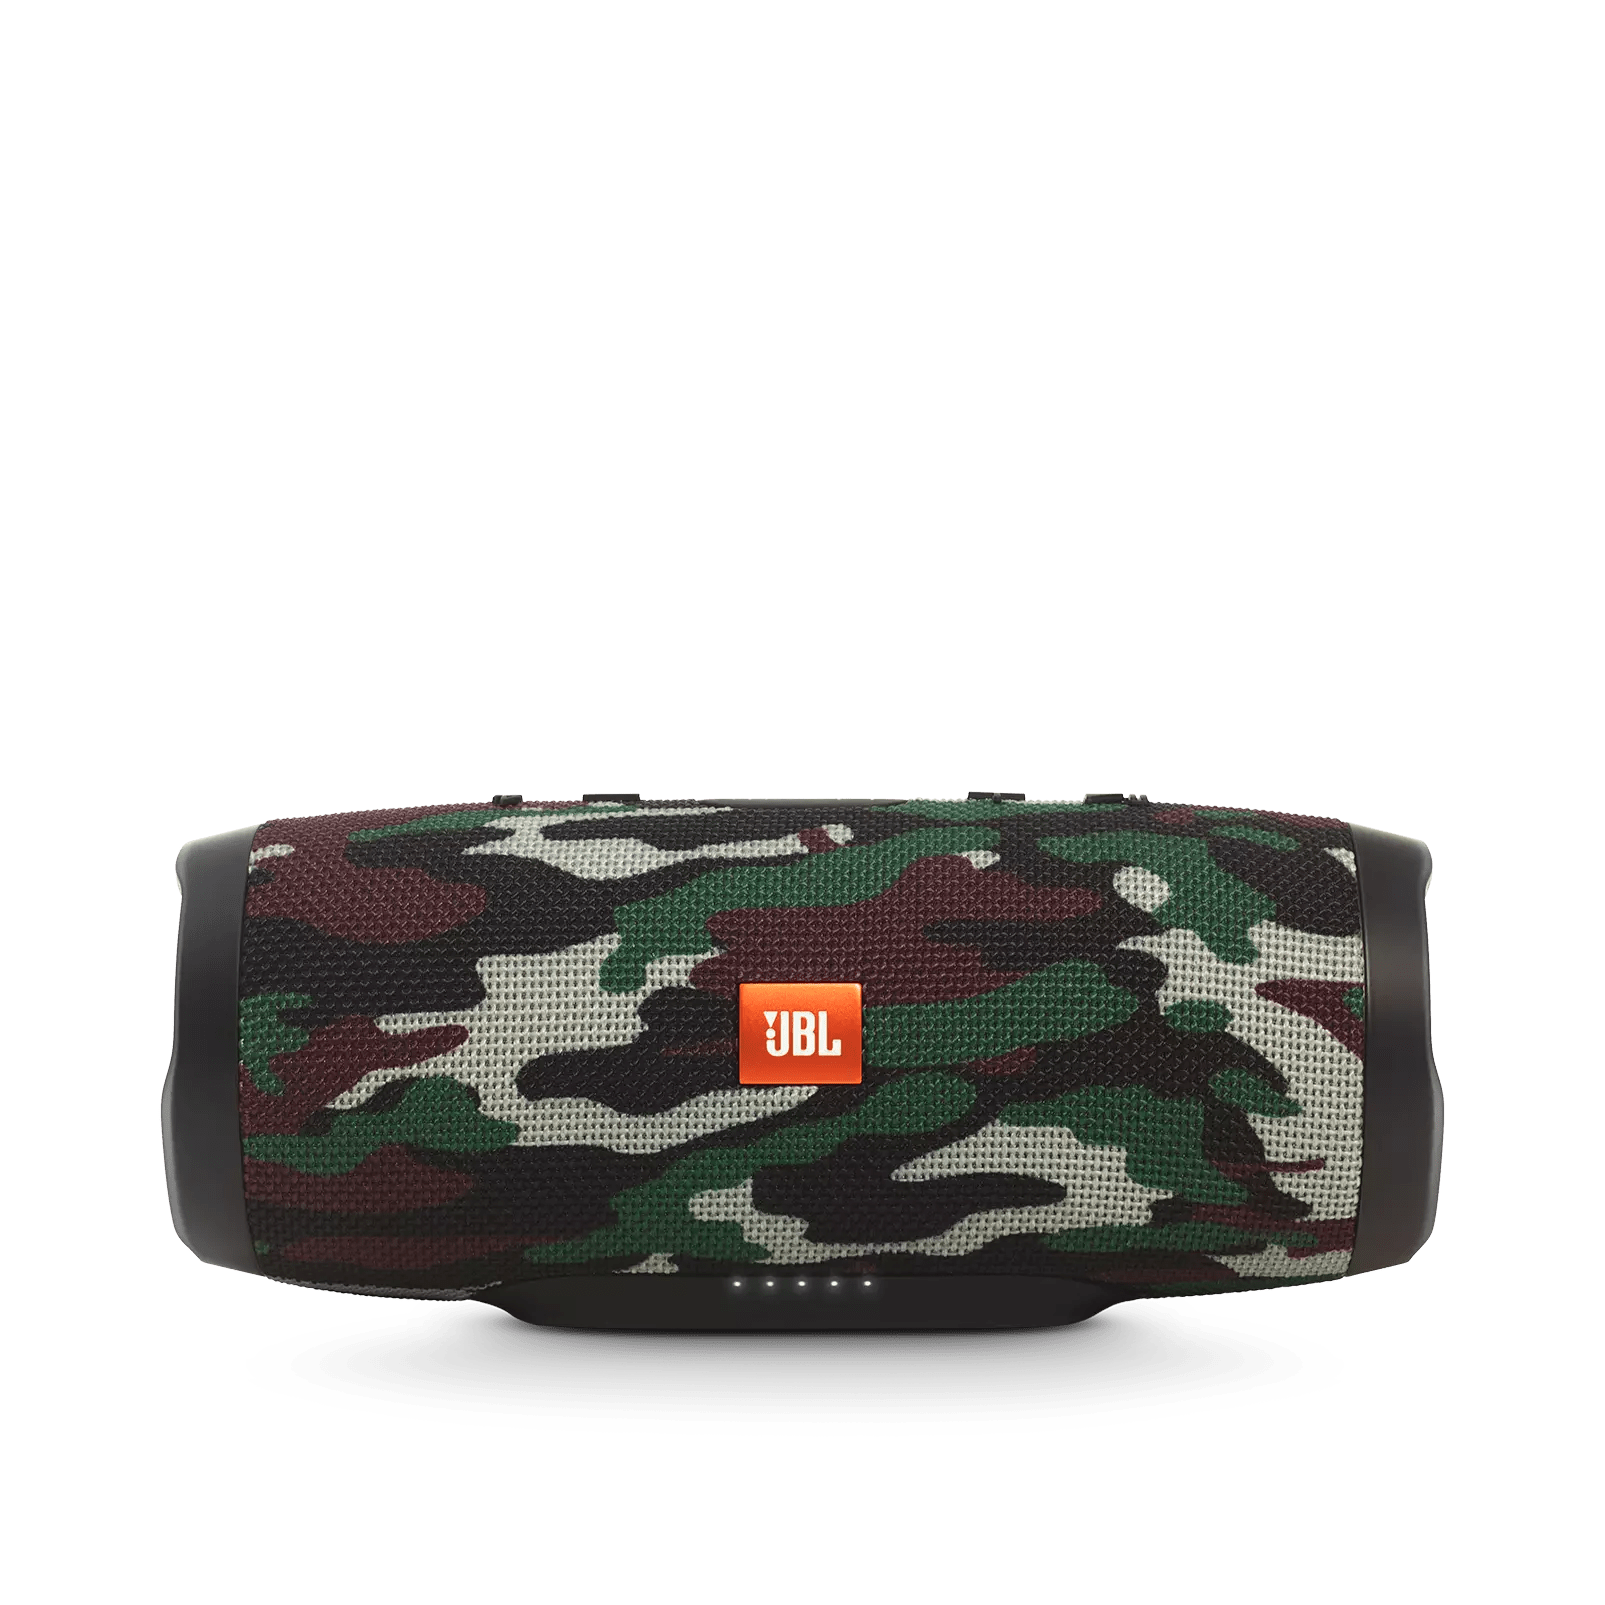 Jbl Charge3 Jbl Charge 3 Waterproof Portable Bluetooth Speaker